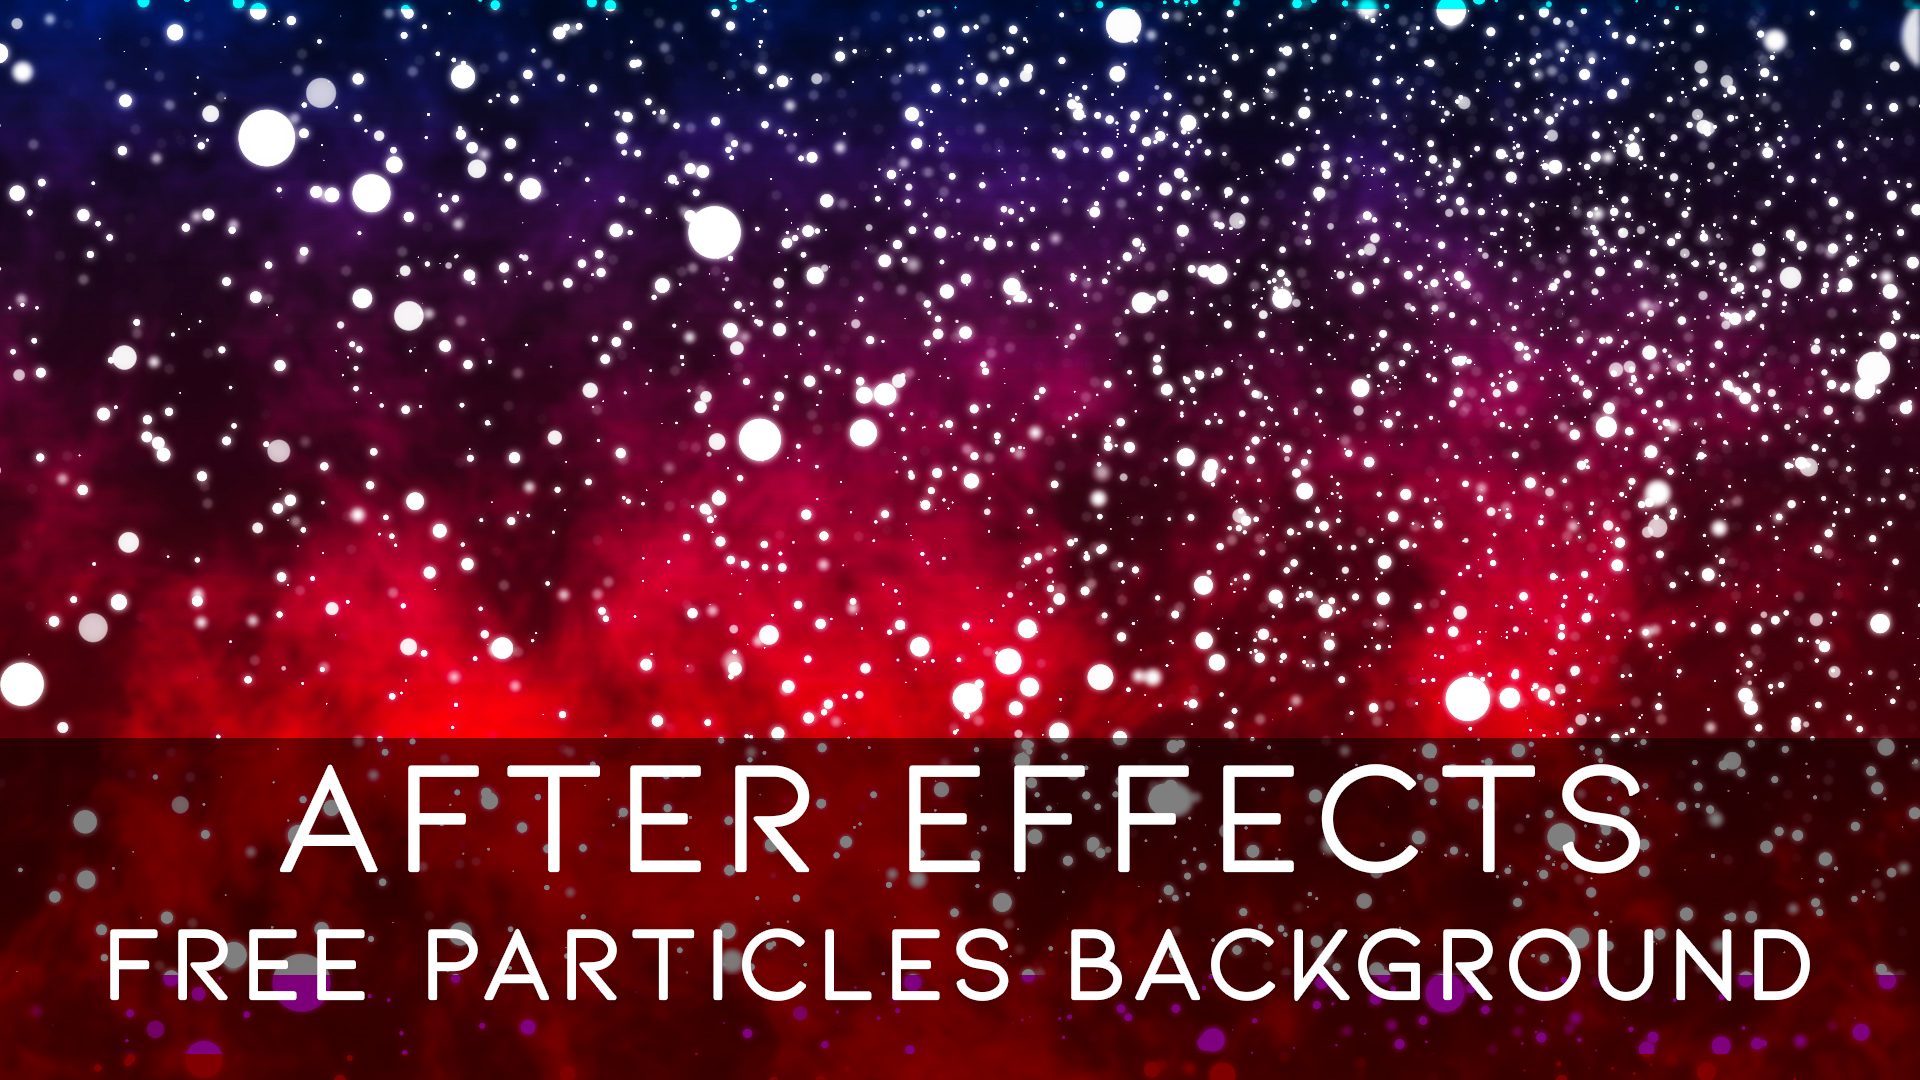 After Effects CC 2019 – Free Particles Backround